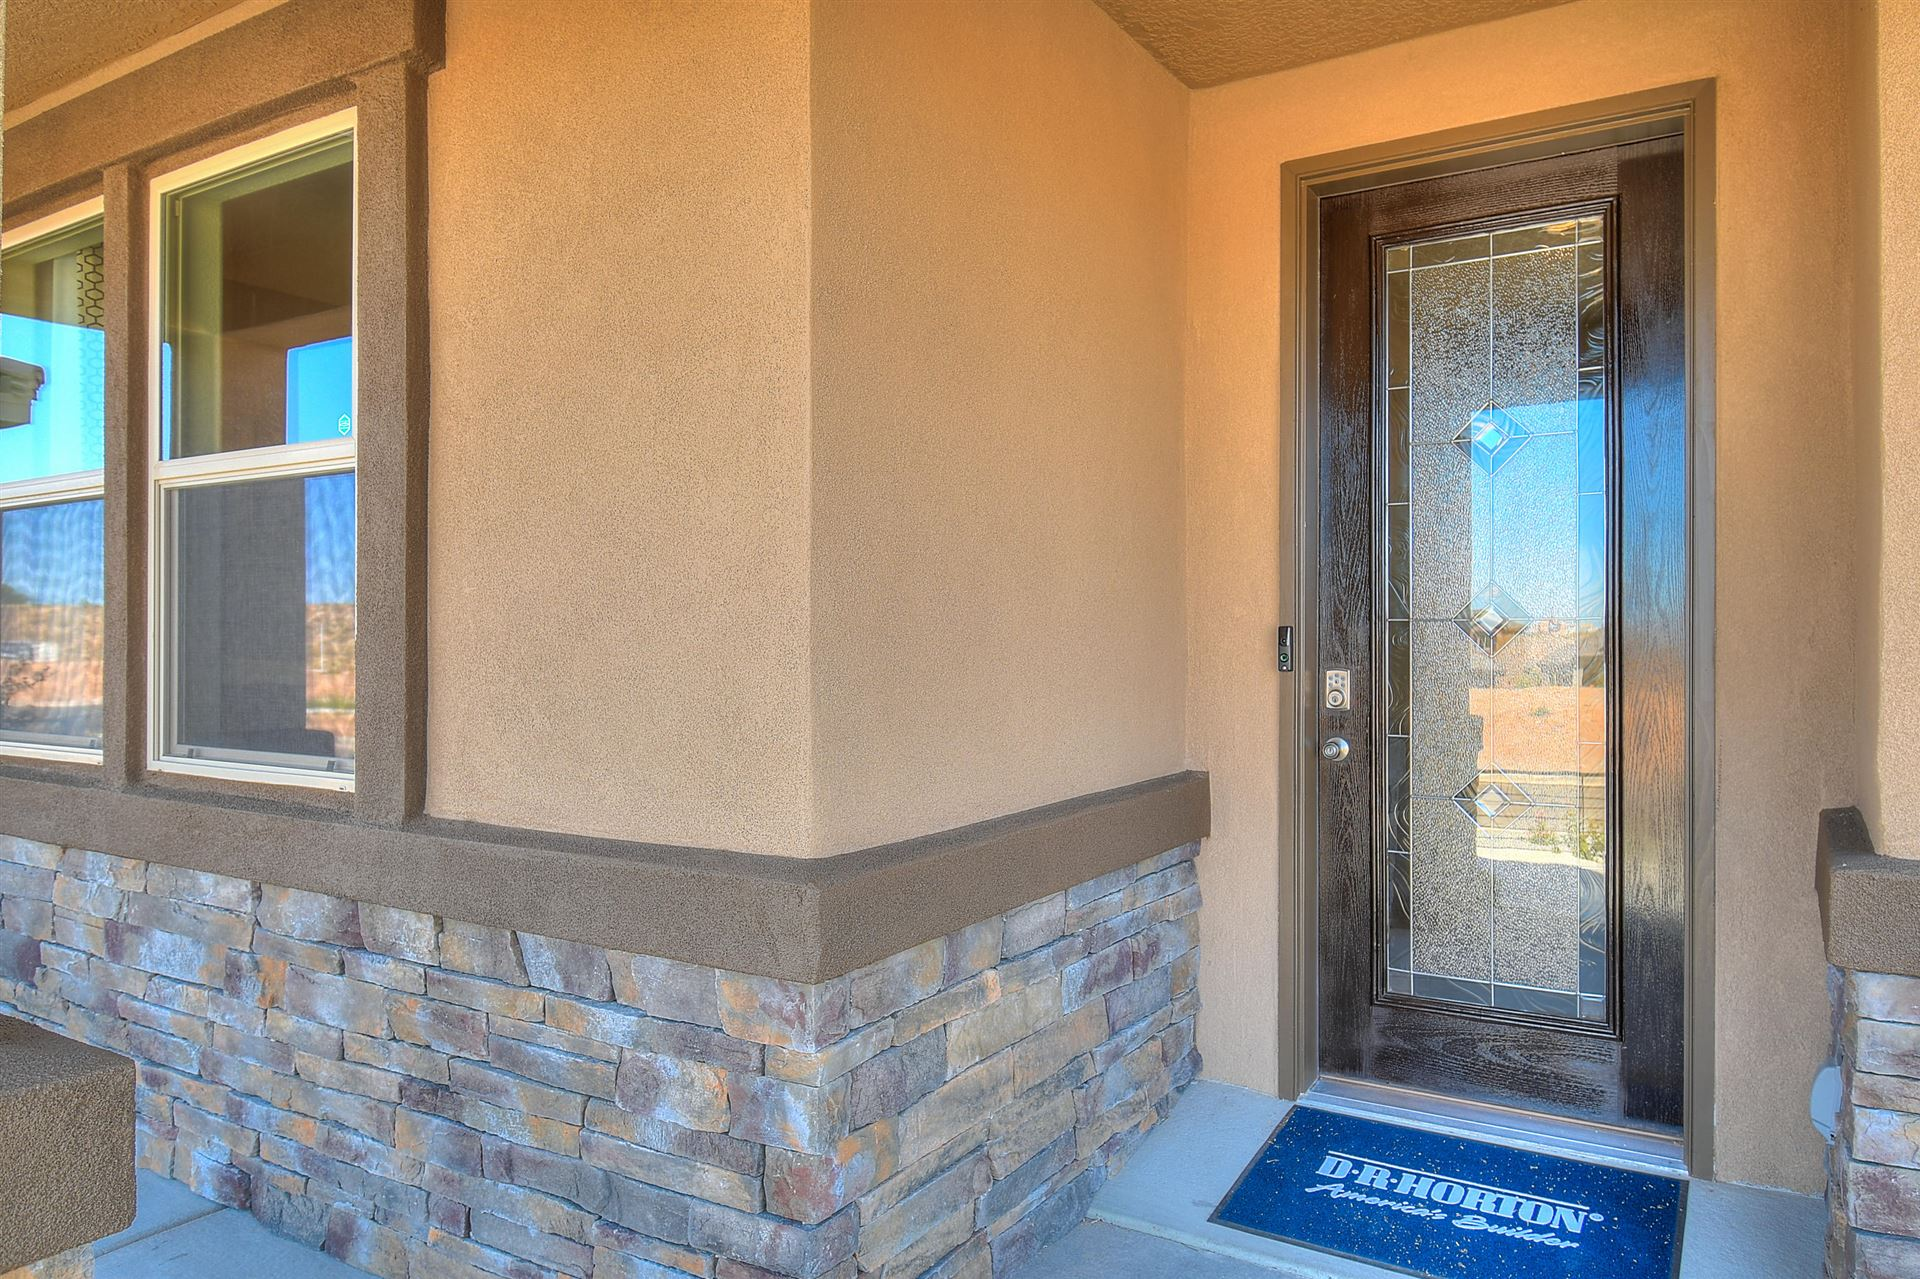 11444 MANZANO VISTA Avenue SE, Albuquerque, NM 87123 - MLS#: 984989